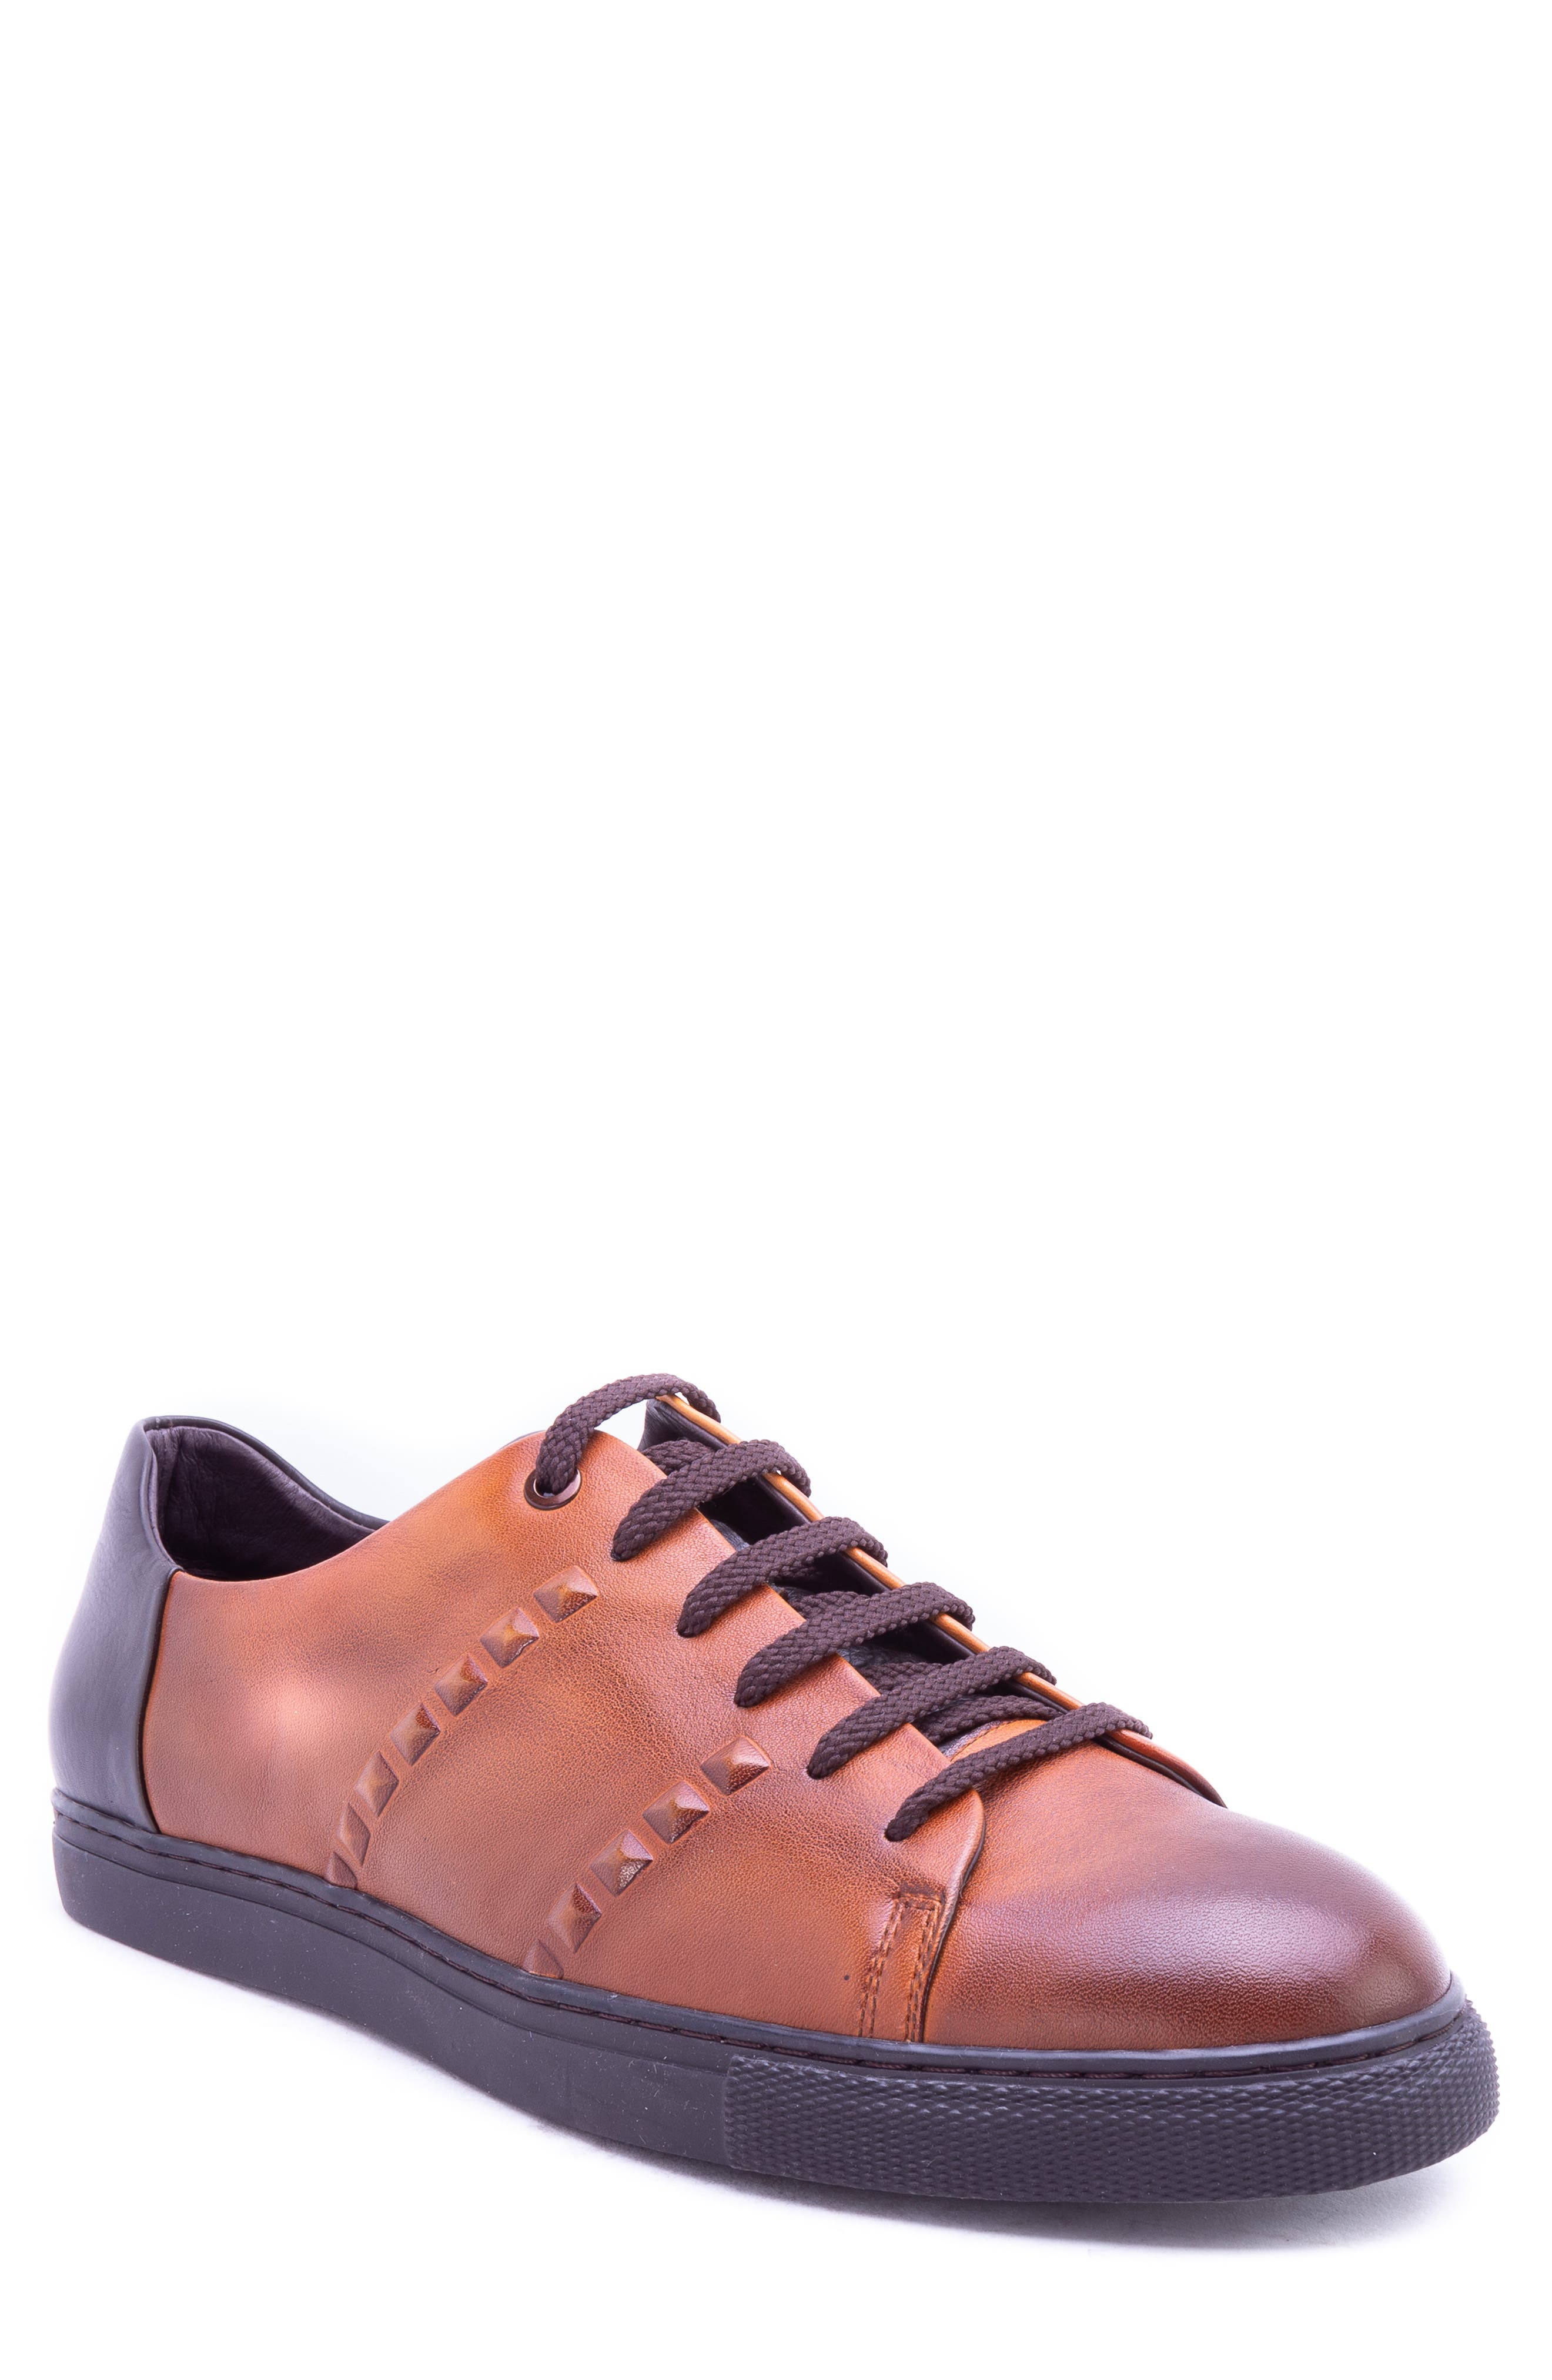 Strozzi Studded Sneaker,                             Main thumbnail 1, color,                             COGNAC LEATHER